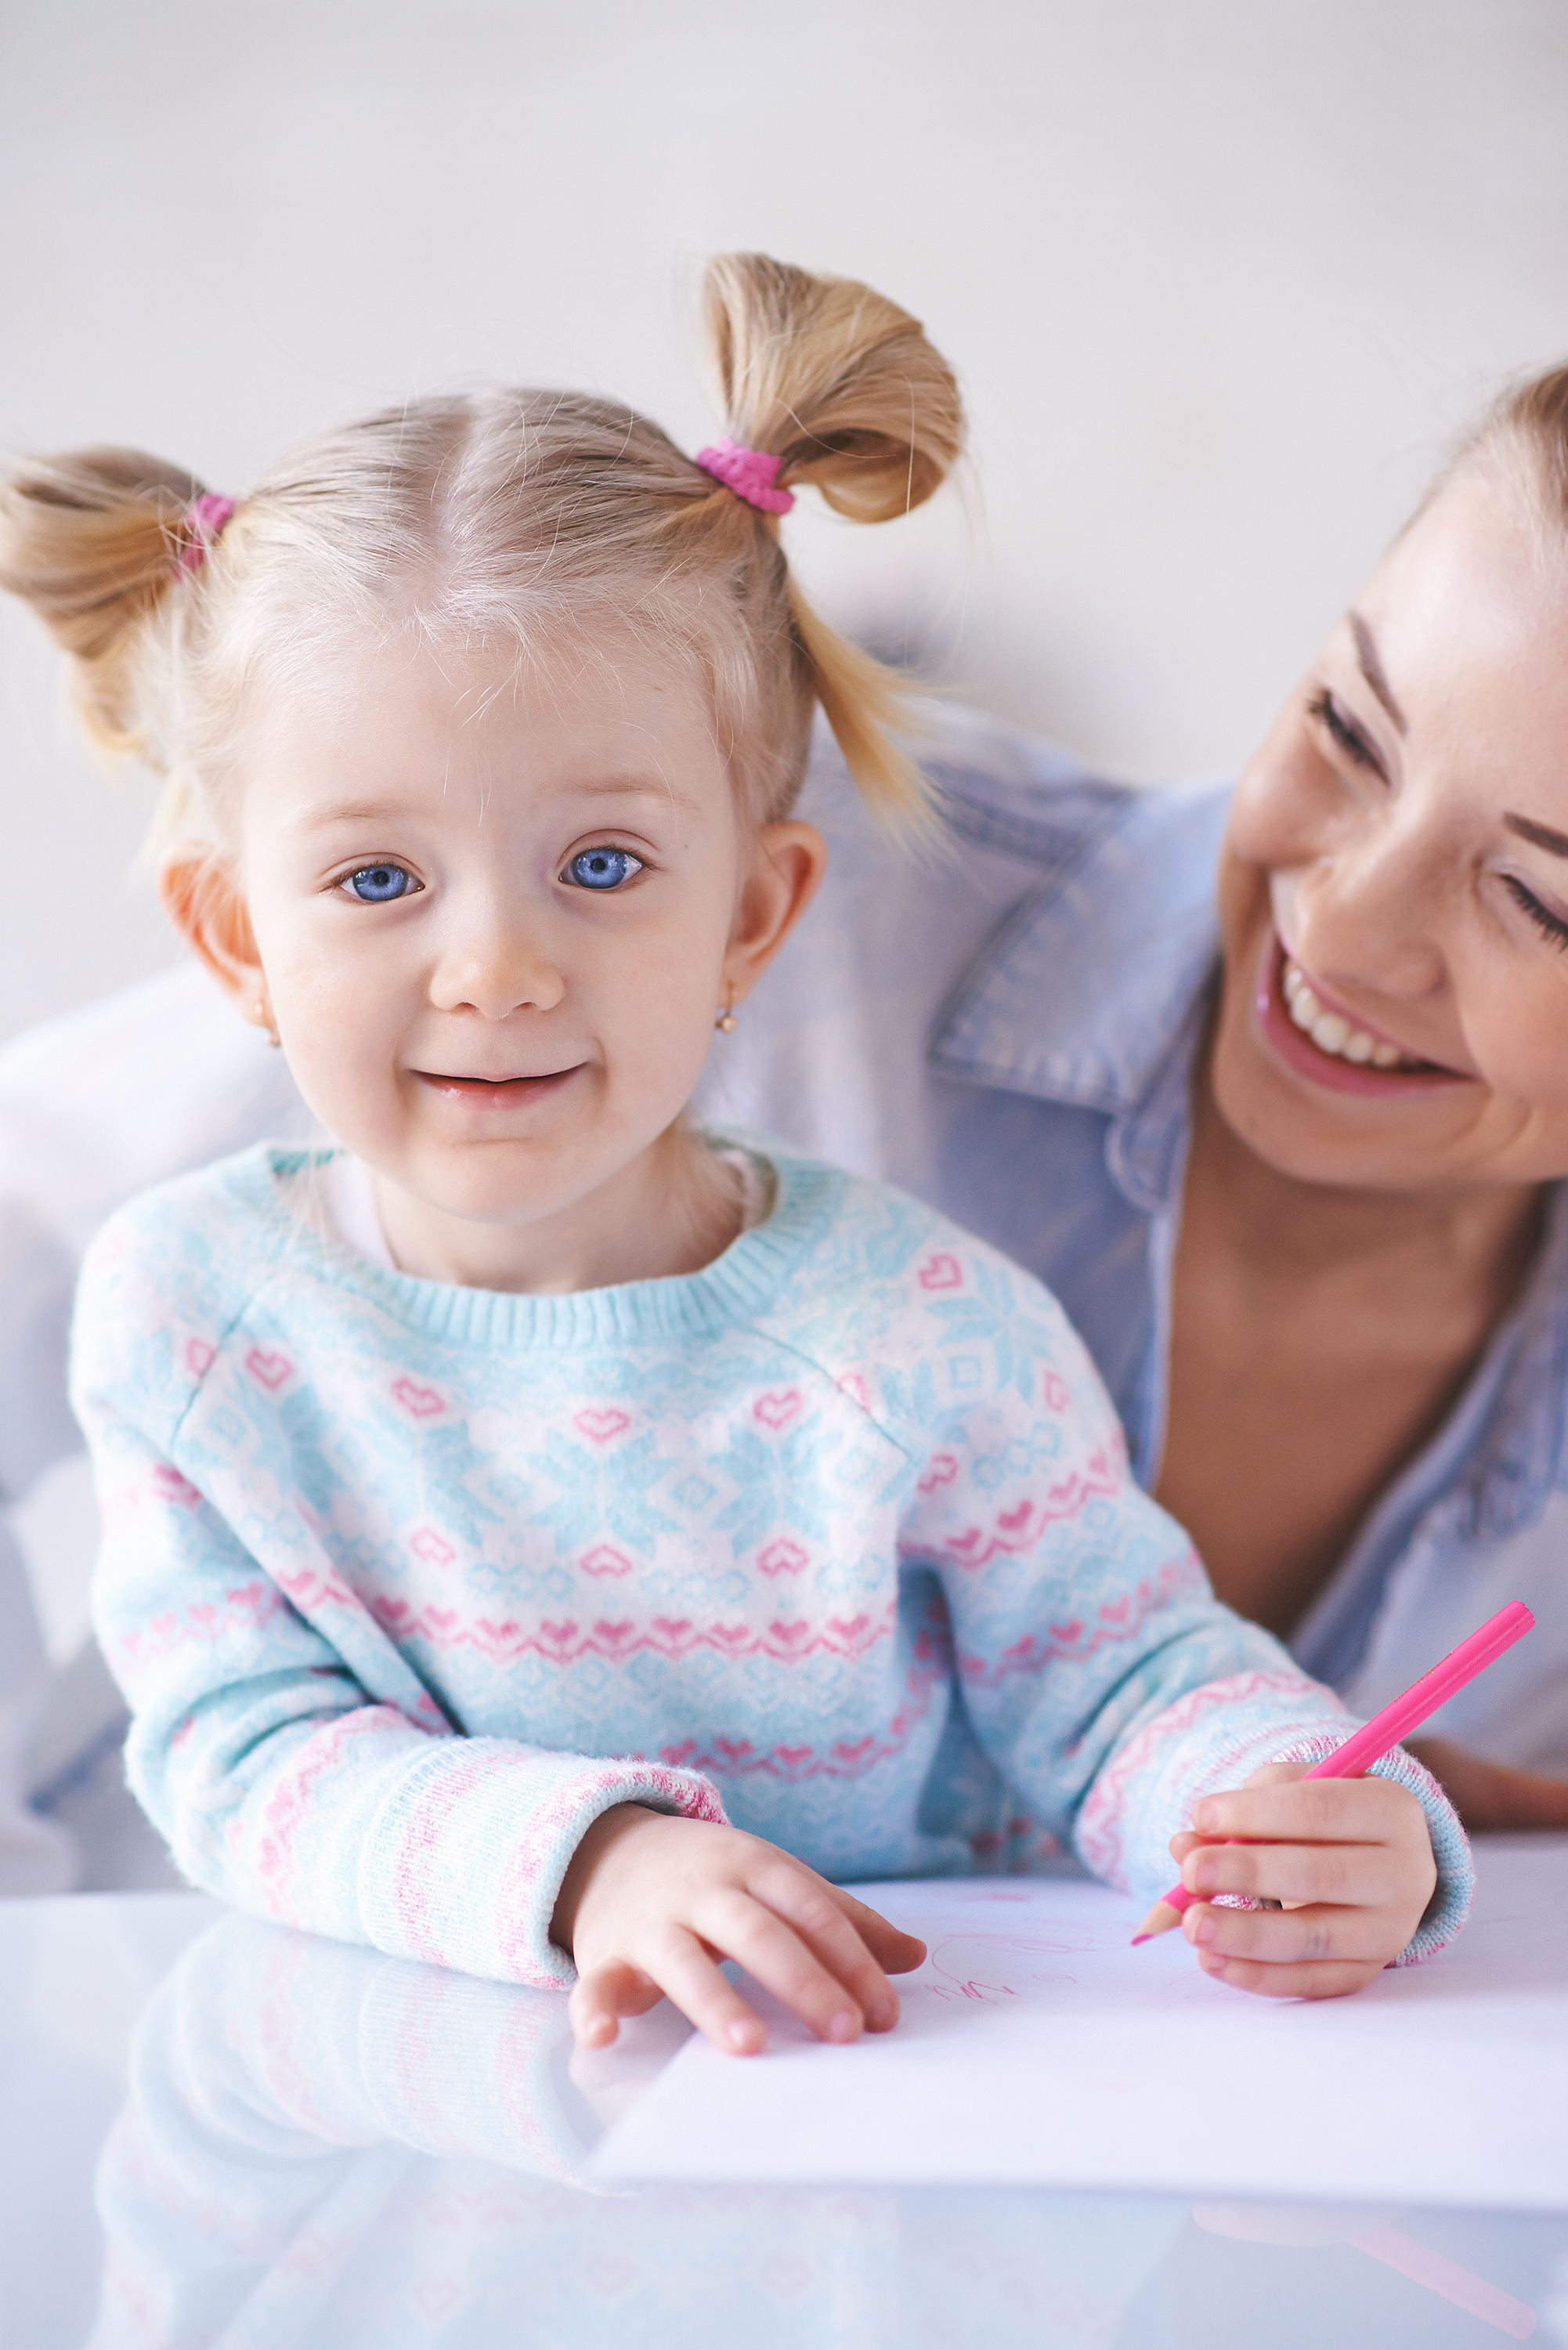 graphicstock-happy-little-girl-with-crayon-and-her-mother-near-by_SXNTpk_fEZ.jpg